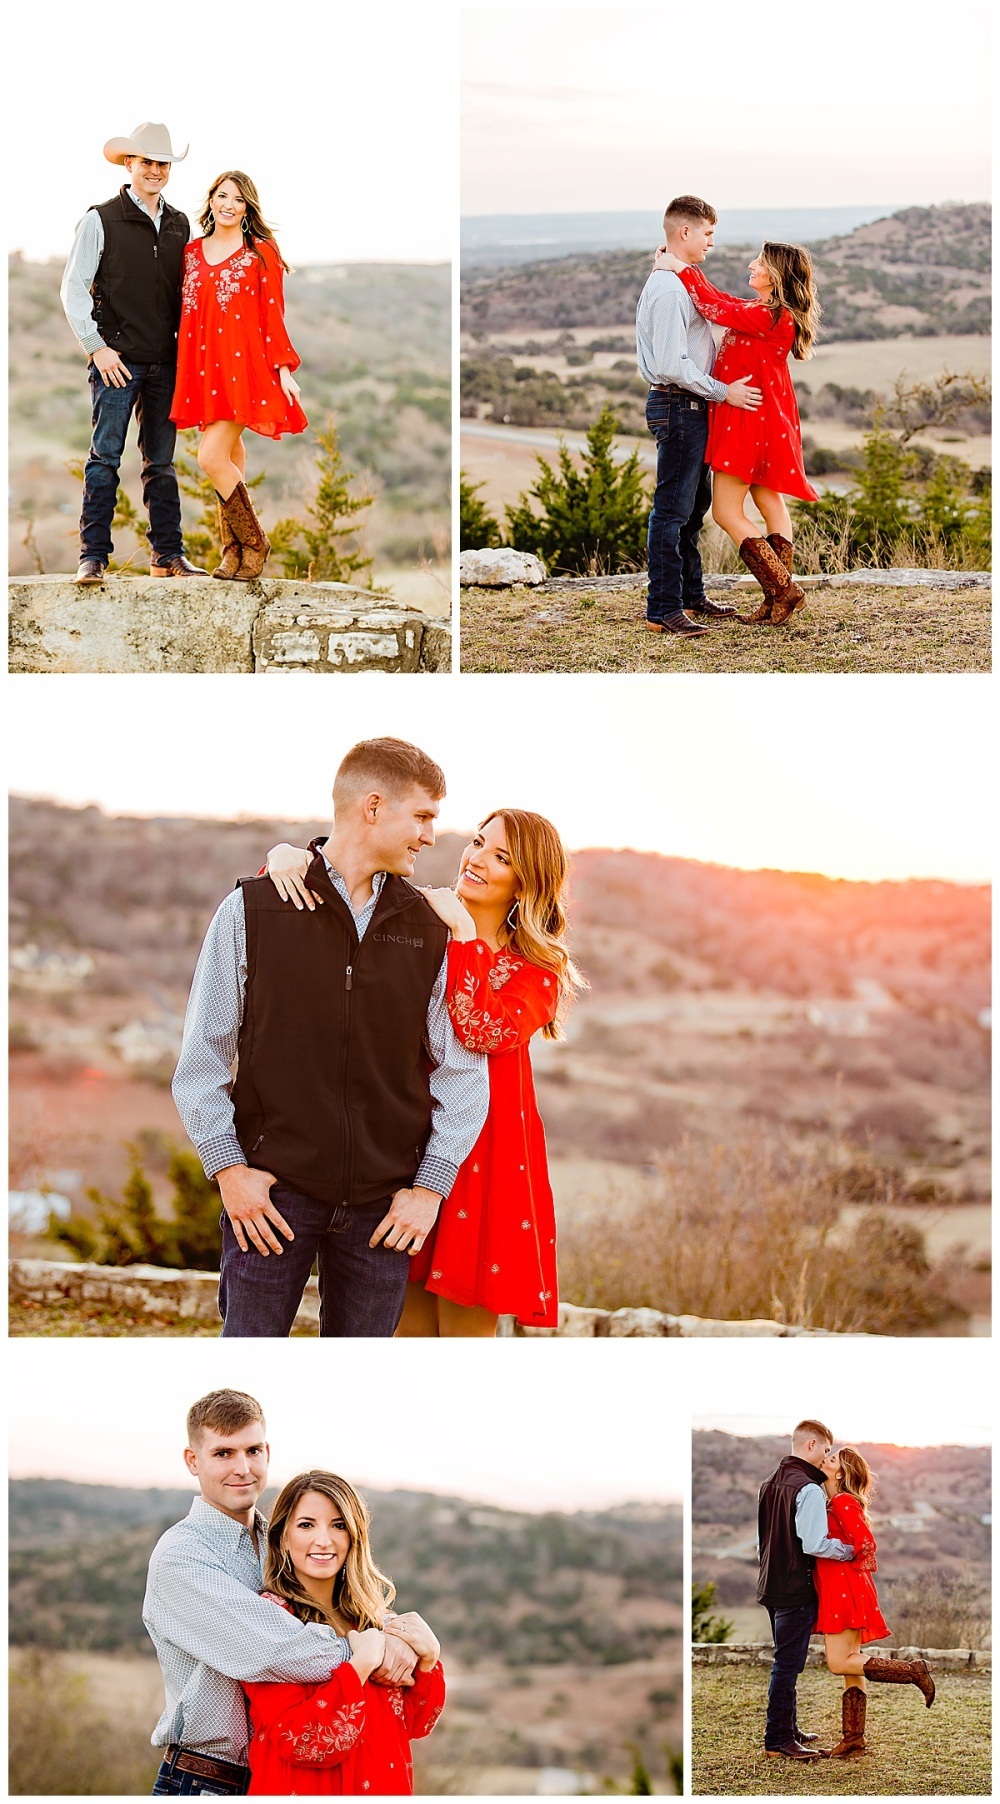 South-Texas-Wedding-Photographer-Engagement-Photos-Happy-H-Ranch-Comfort-Texas-Sunset-Couples-Carly-Barton-Photography-Justin-Erica_0013.jpg